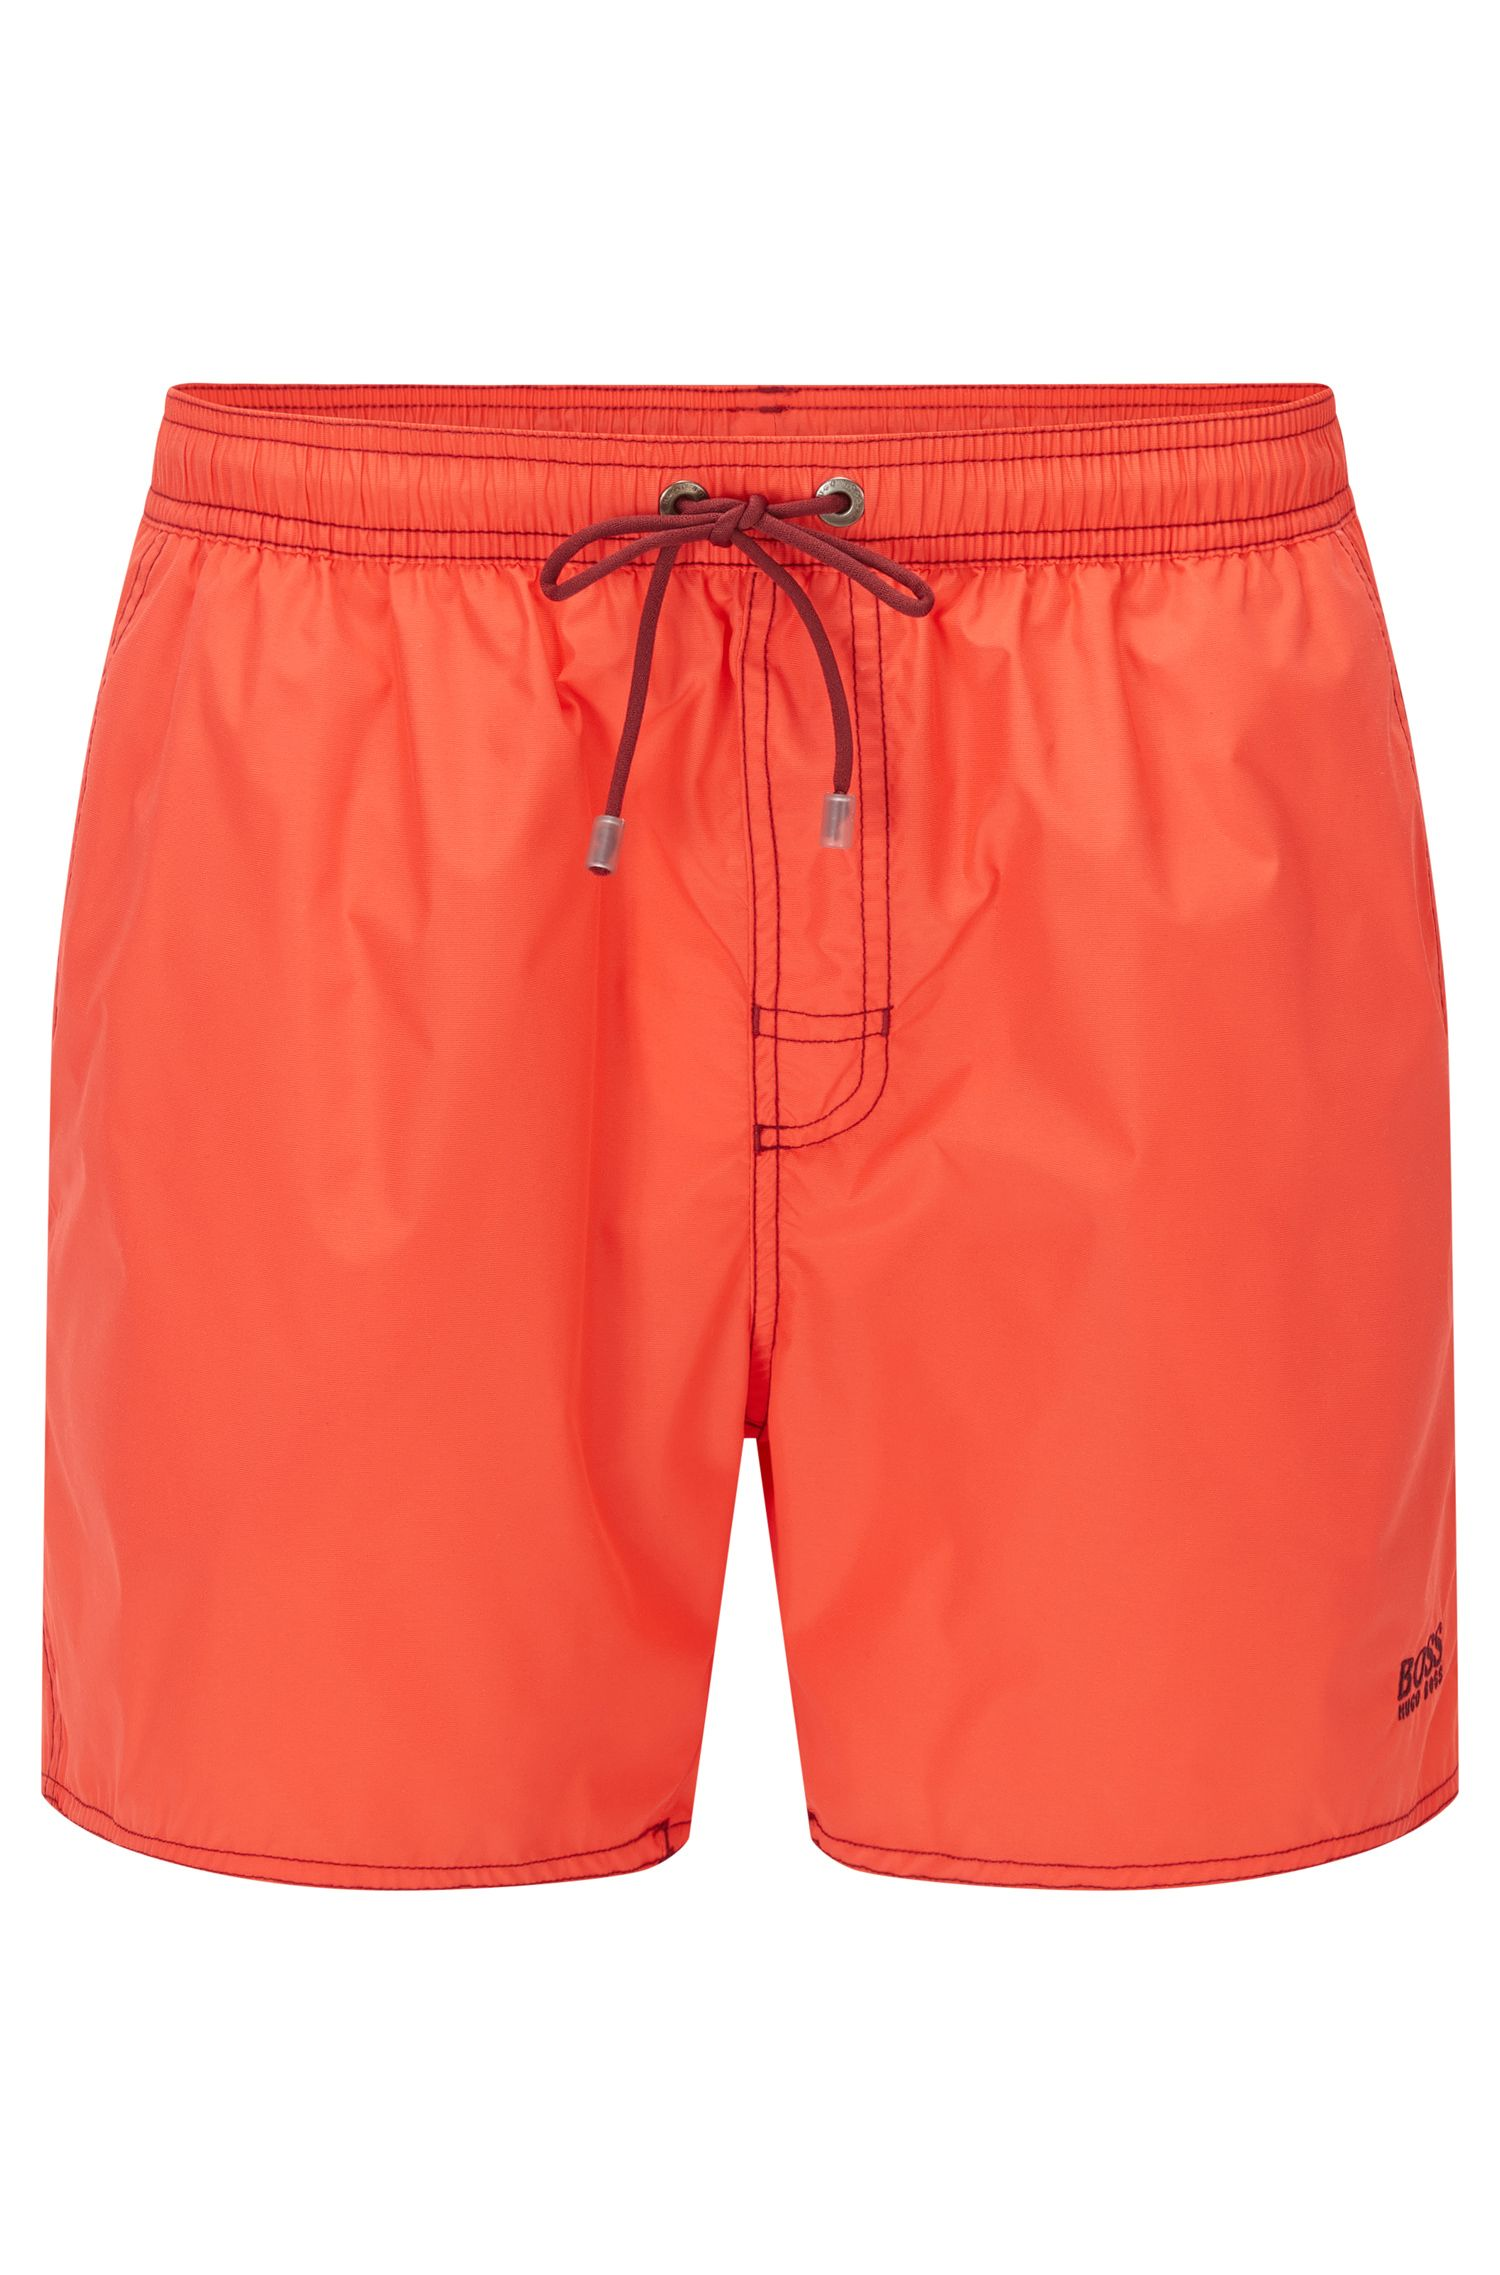 Quick Dry Swim Trunks | Lobster, Light Red